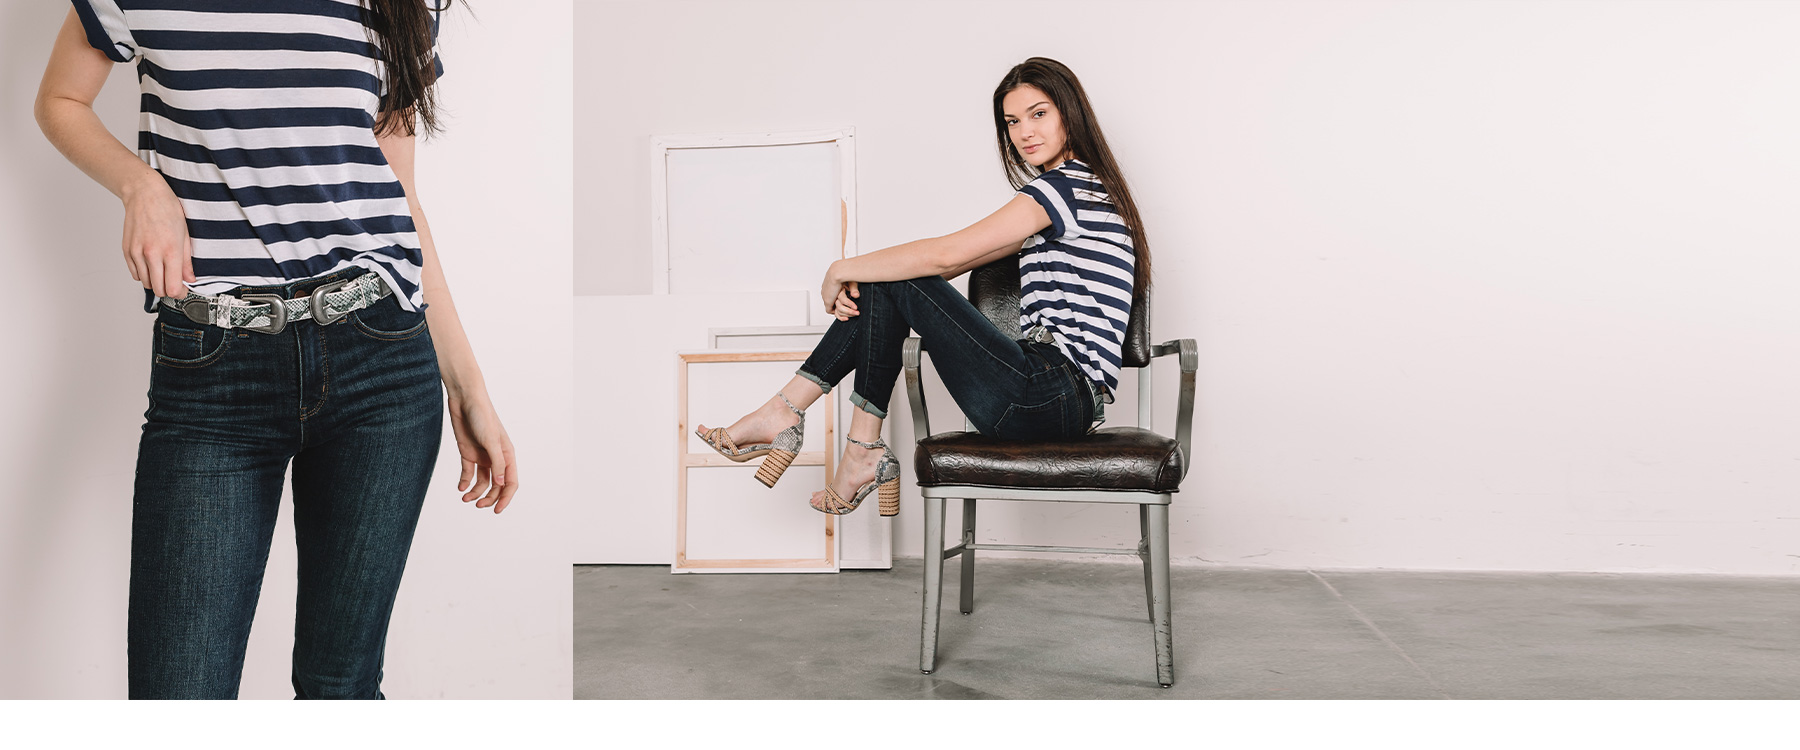 Girl sitting sideways in a chair, wearing dark skinny jeans and a striped t-shirt from Buckle.